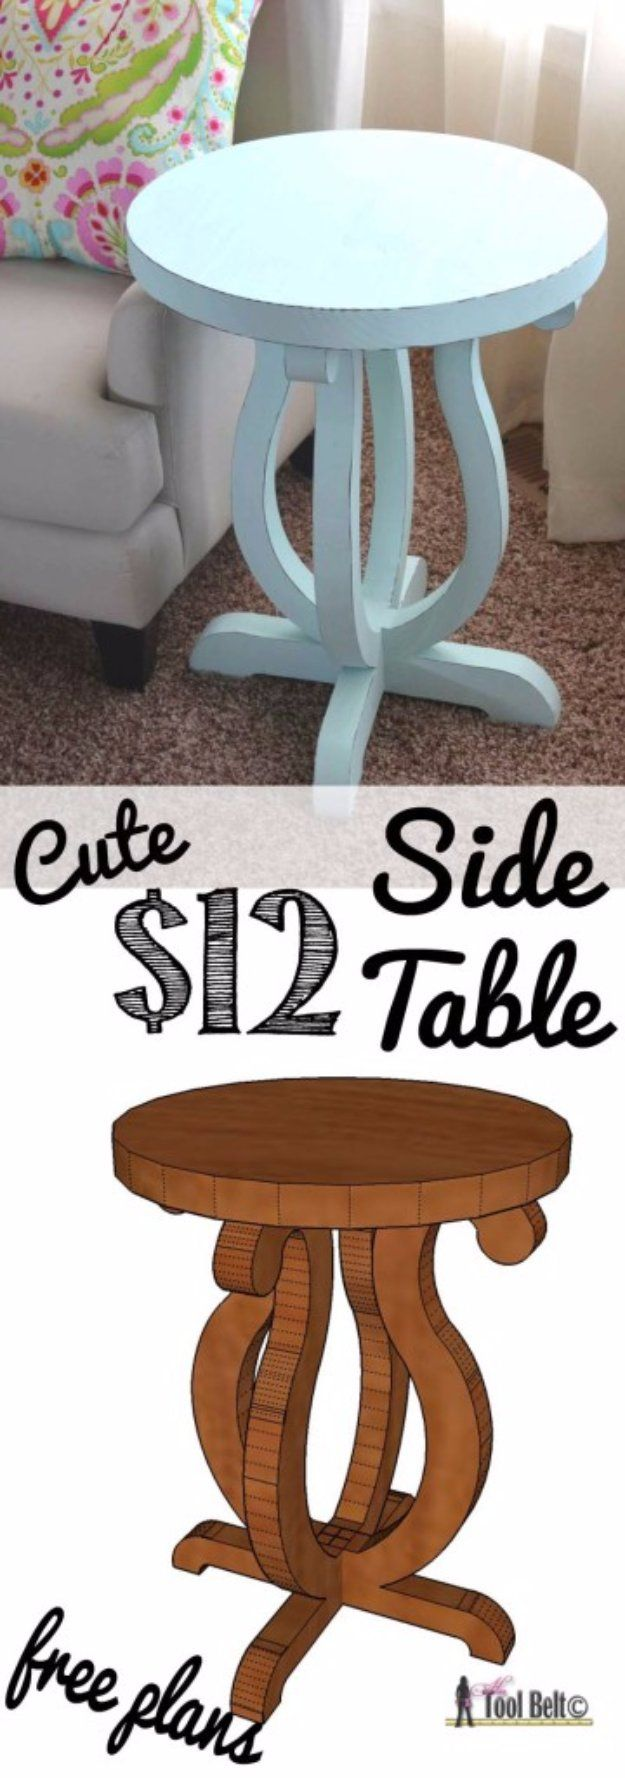 DIY End Tables with Step by Step Tutorials - Curvy Side Table - Cheap and Easy End Table Projects and Plans - Wood, Storage, Pallet, Crate, Modern and Rustic. Bedroom and Living Room Decor Ideas http://diyjoy.com/diy-end-tables